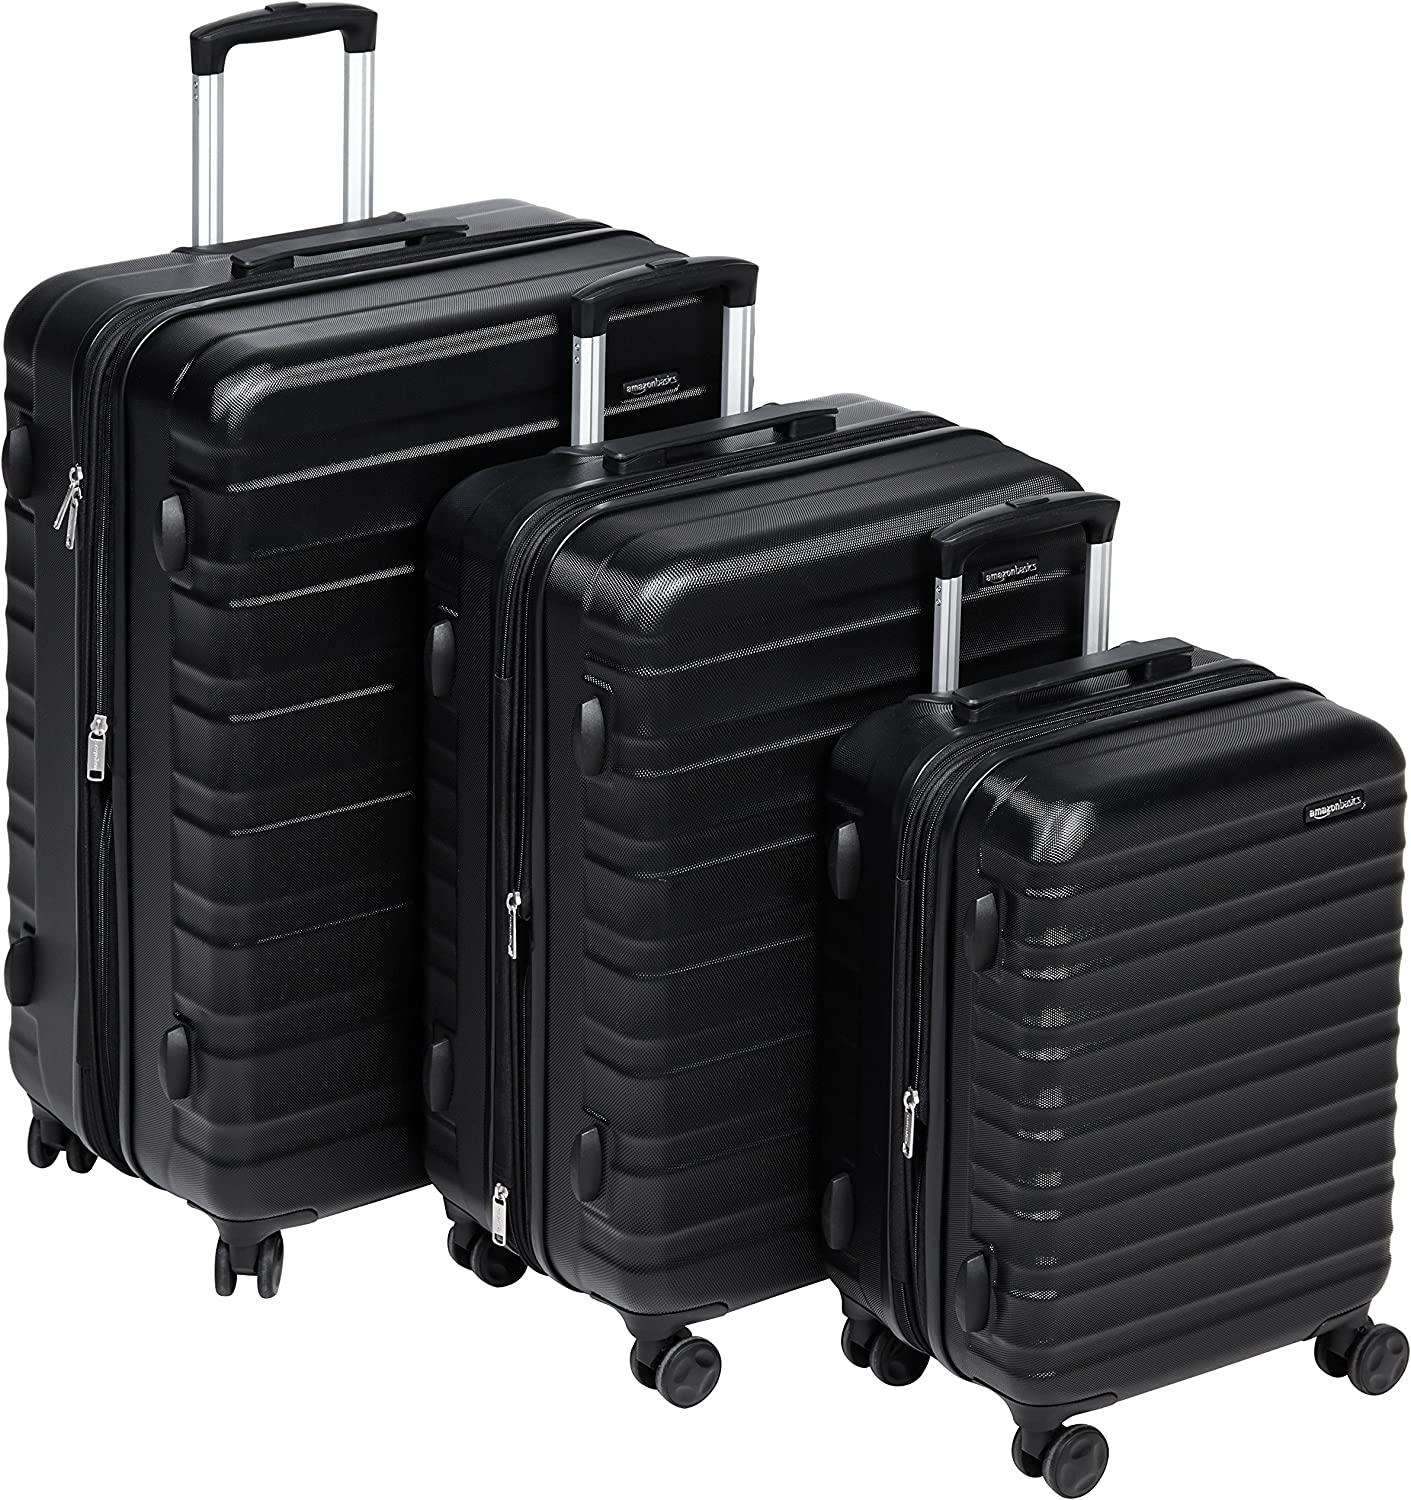 Top 7 Best Lightweight Luggage for International Travel 7